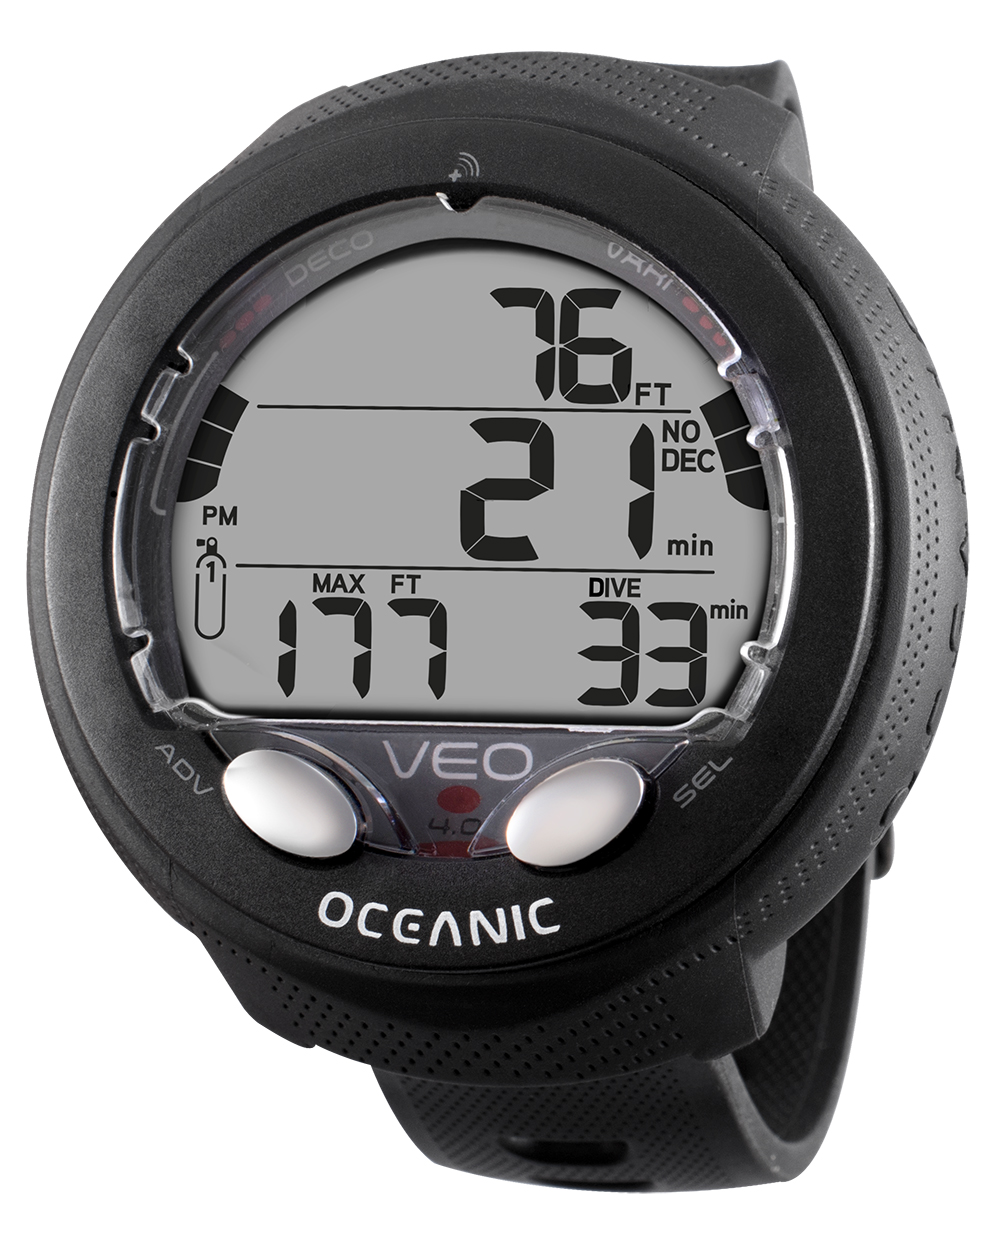 VEO-4.0-Oceanic-TECNOMAR-DIVING